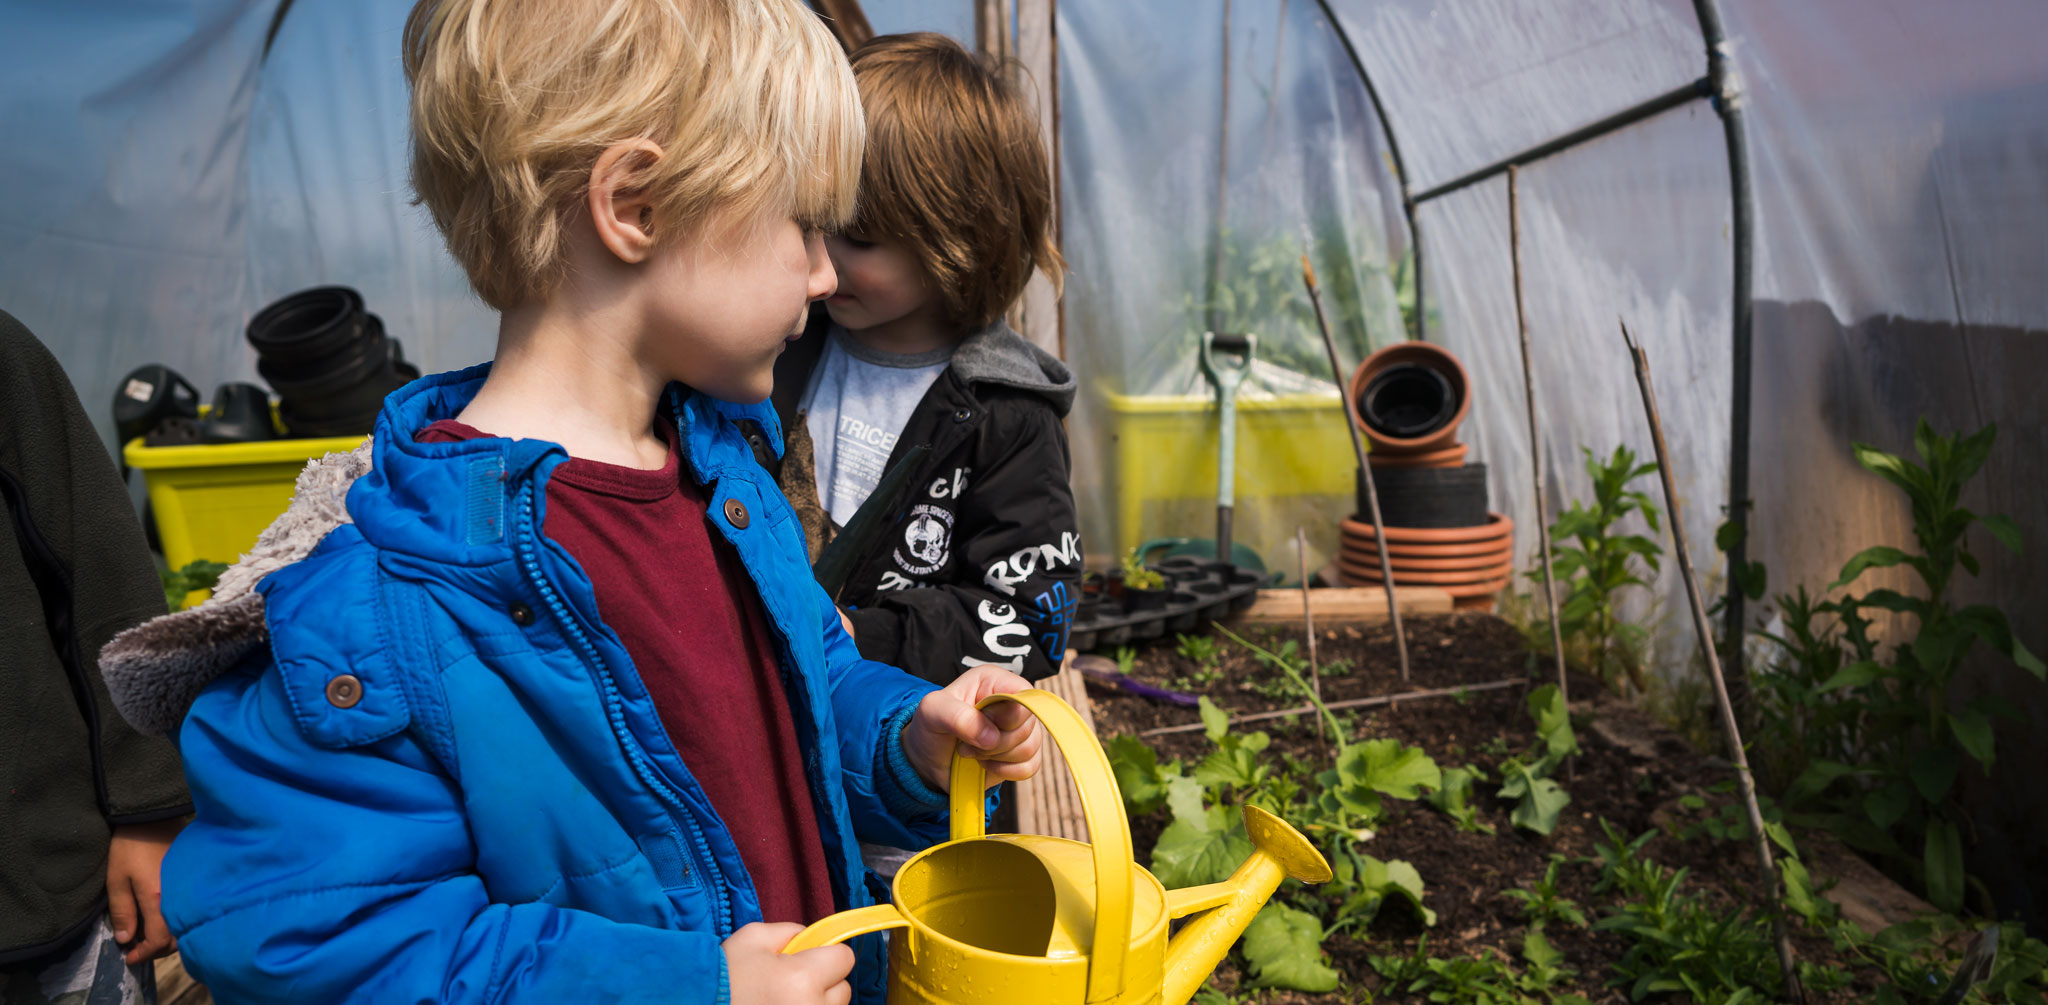 Yew Tree Nursery - About Us